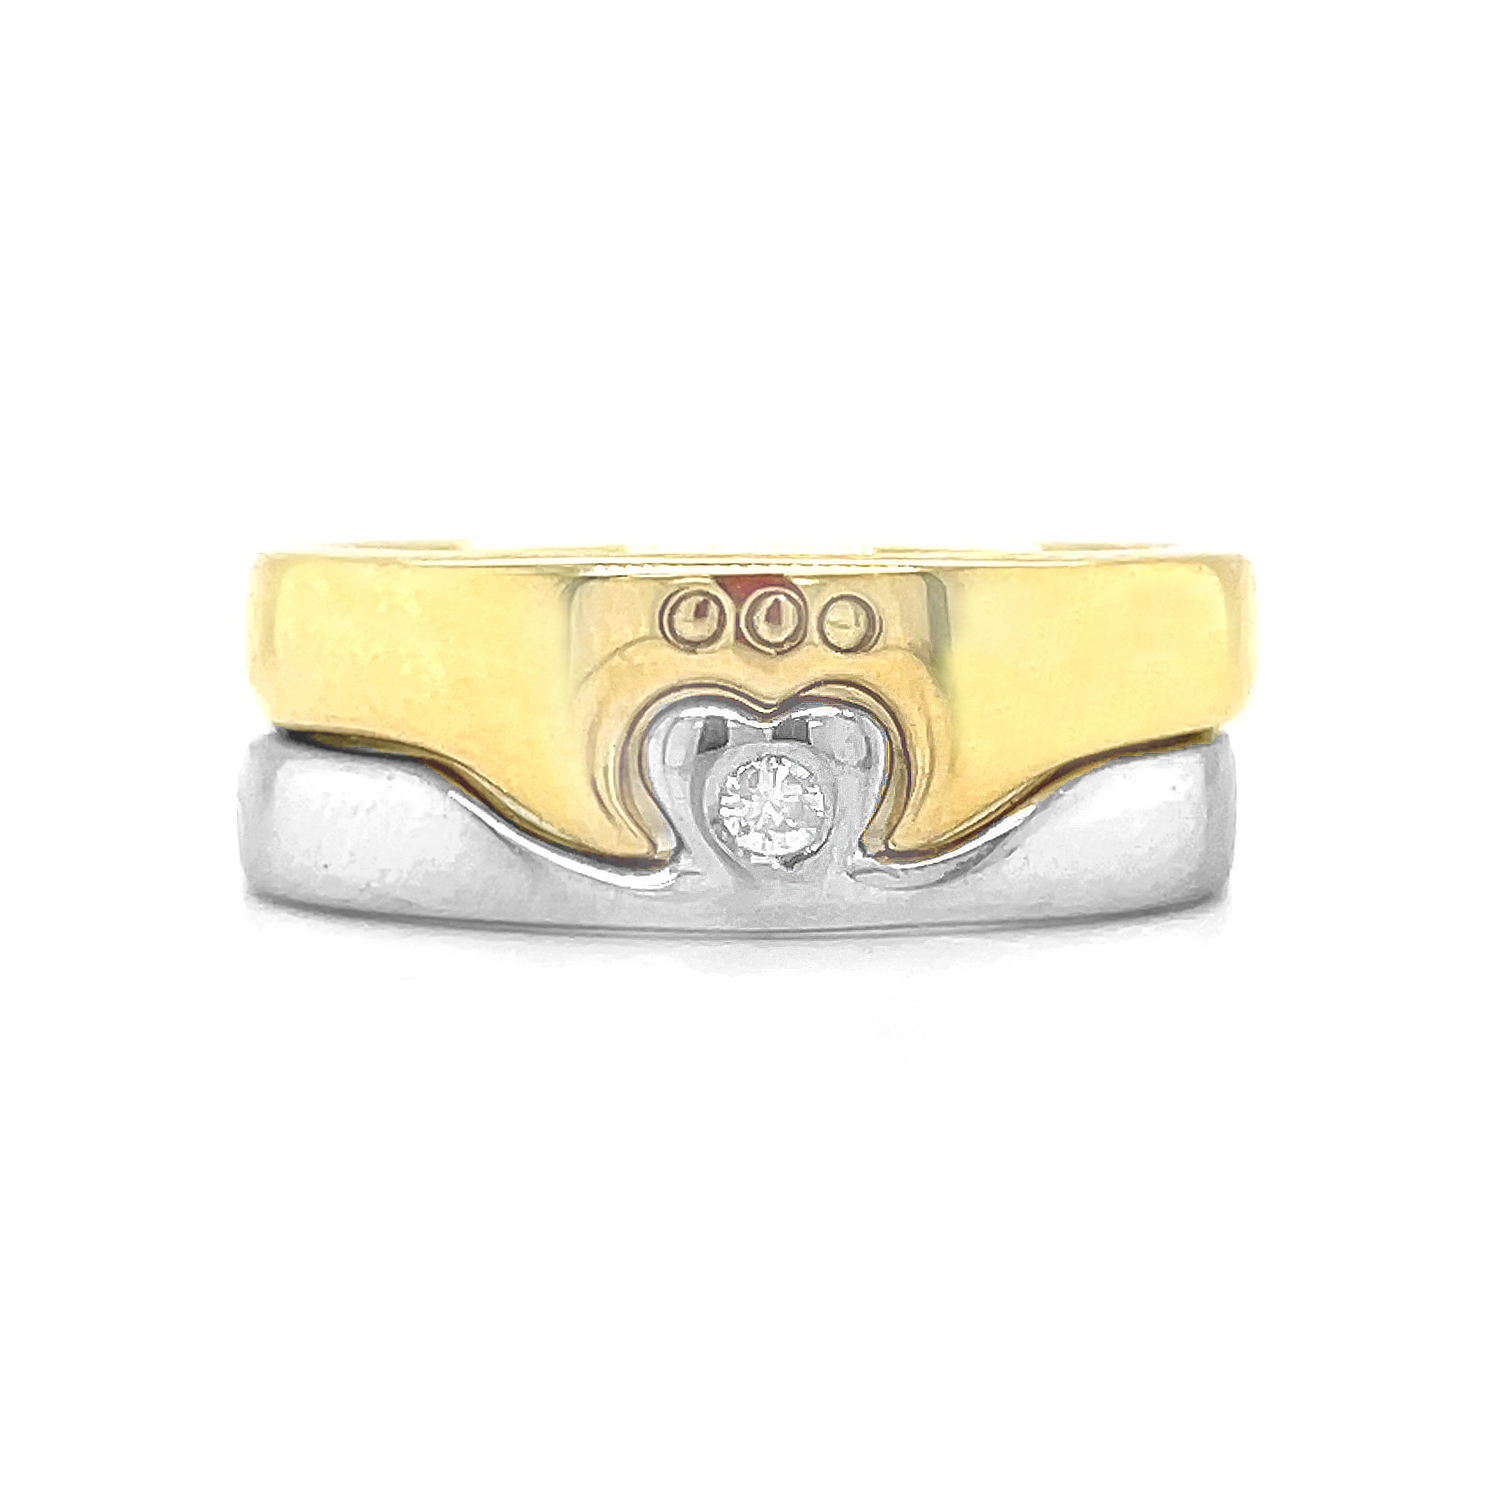 10k White Gold & Yellow Gold 2 Part Claddagh Ring